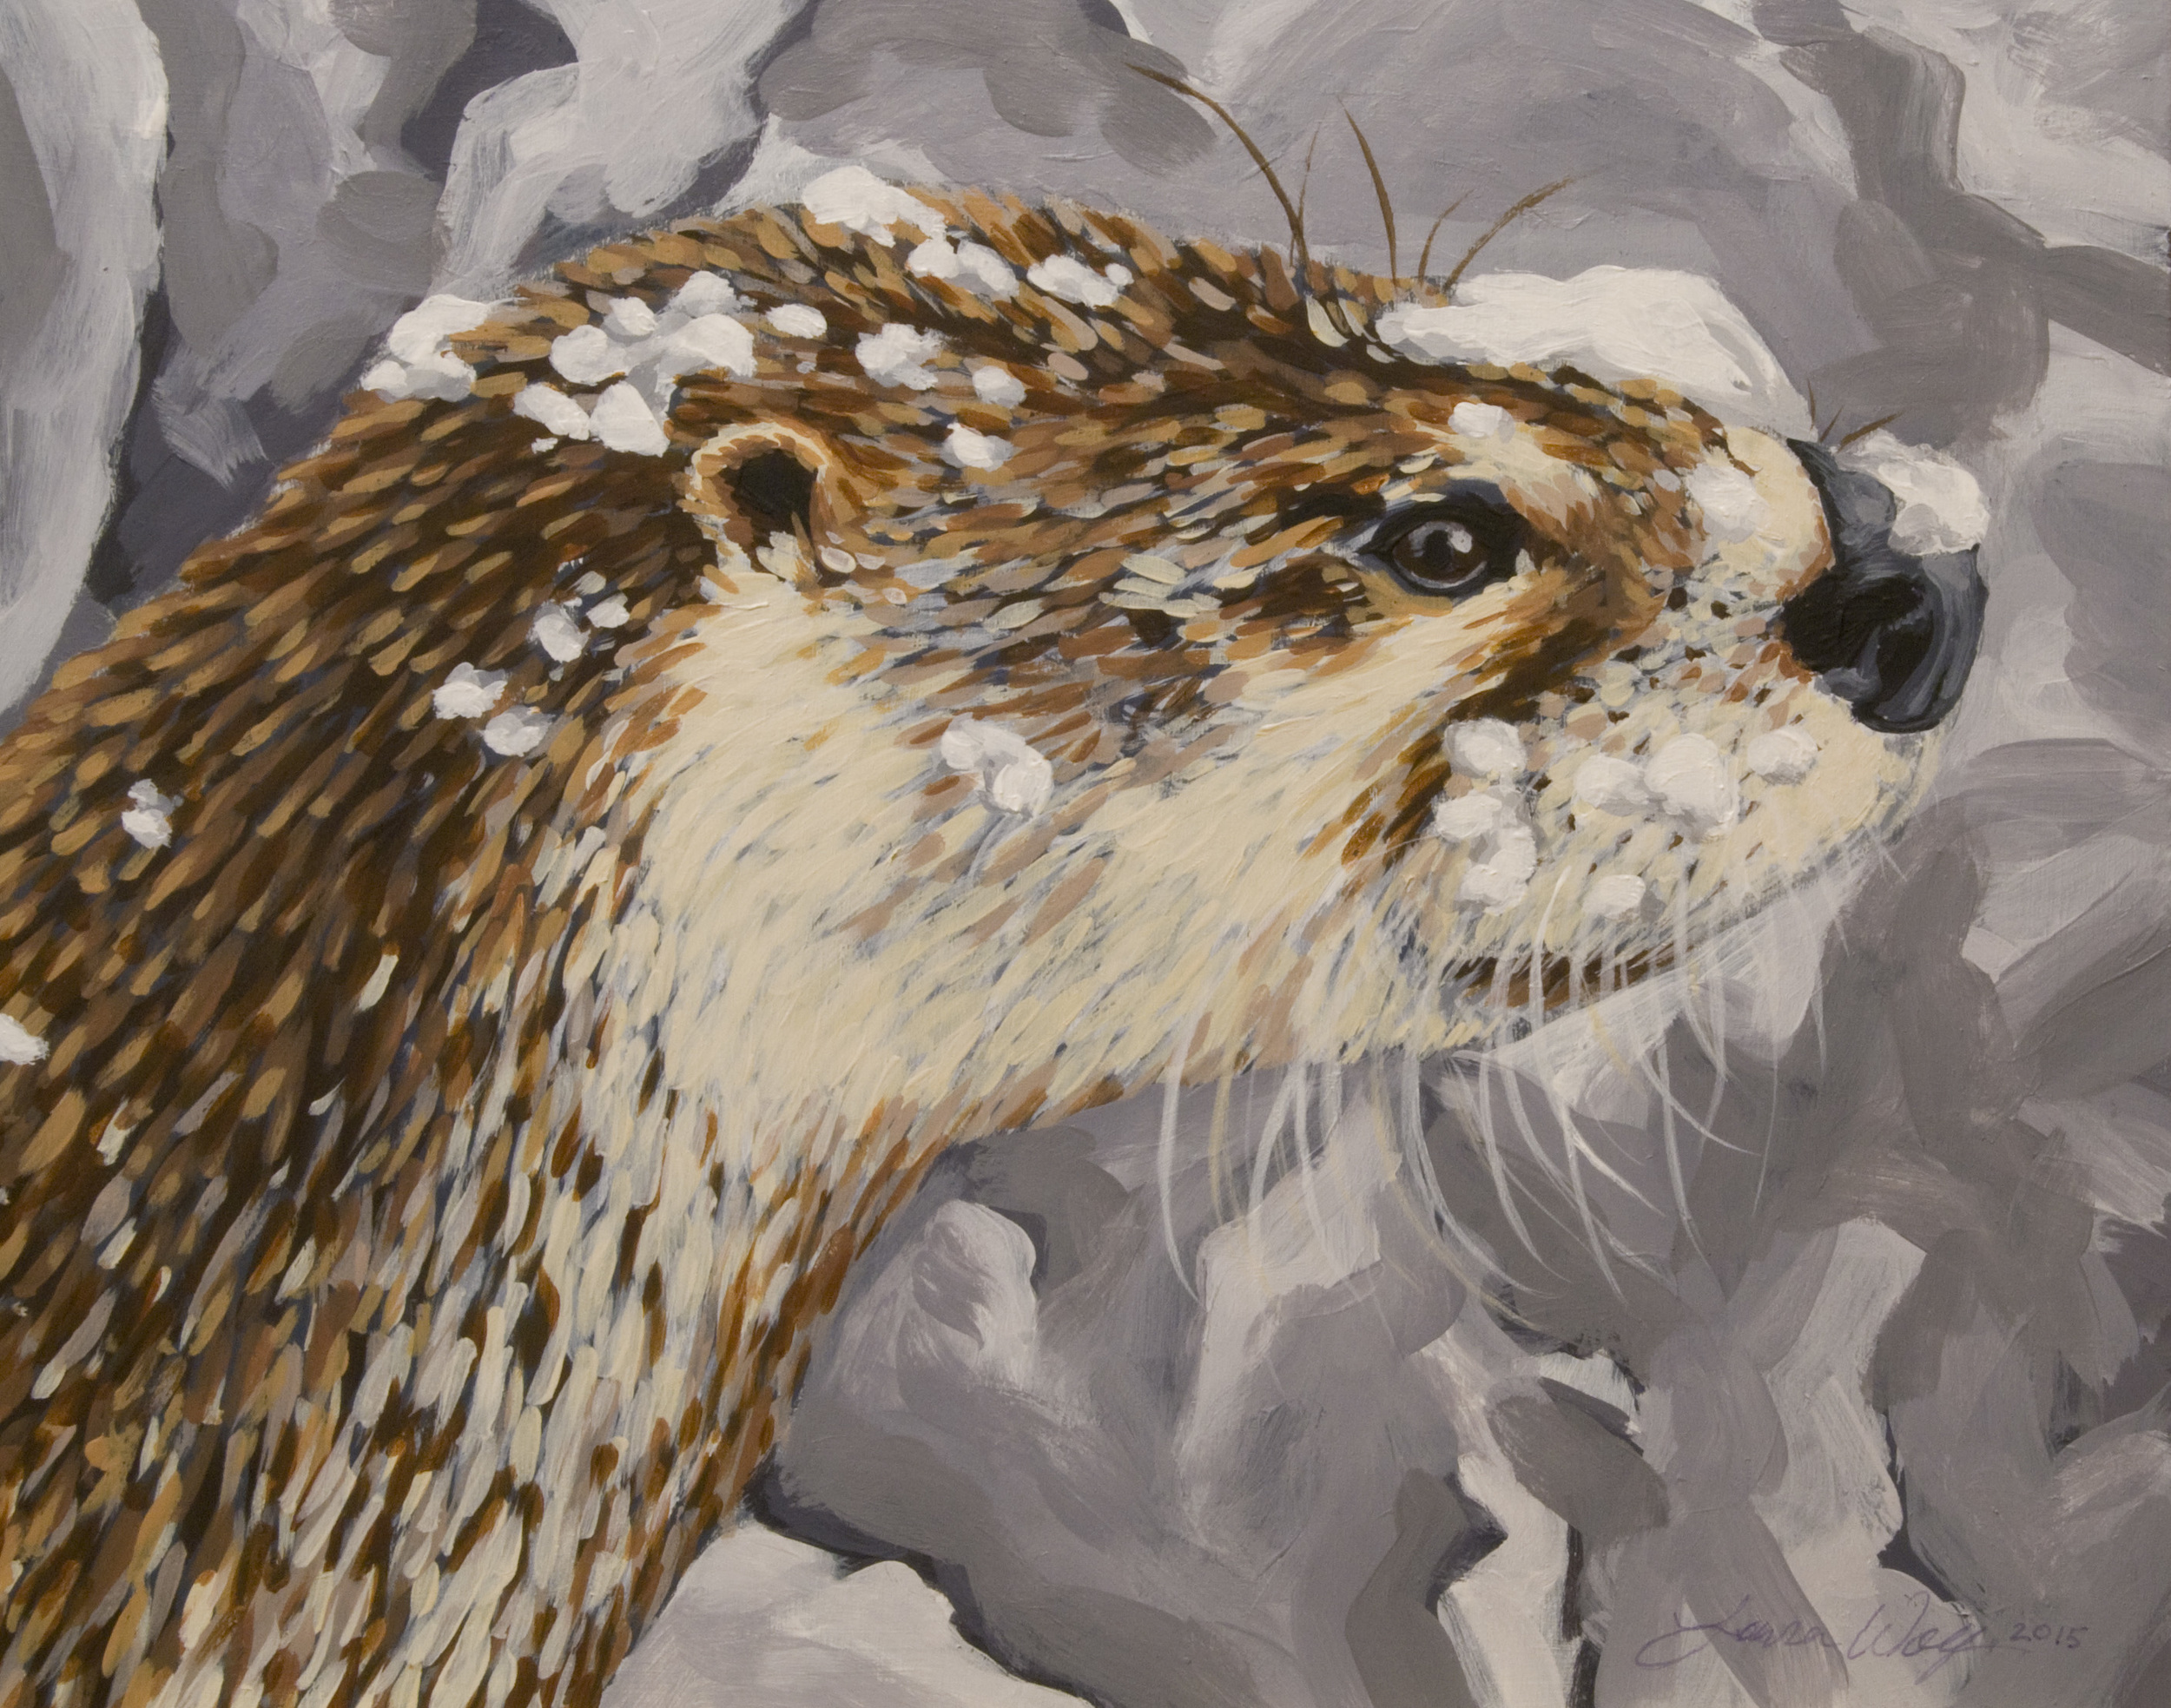 Elvis, a North American River Otter